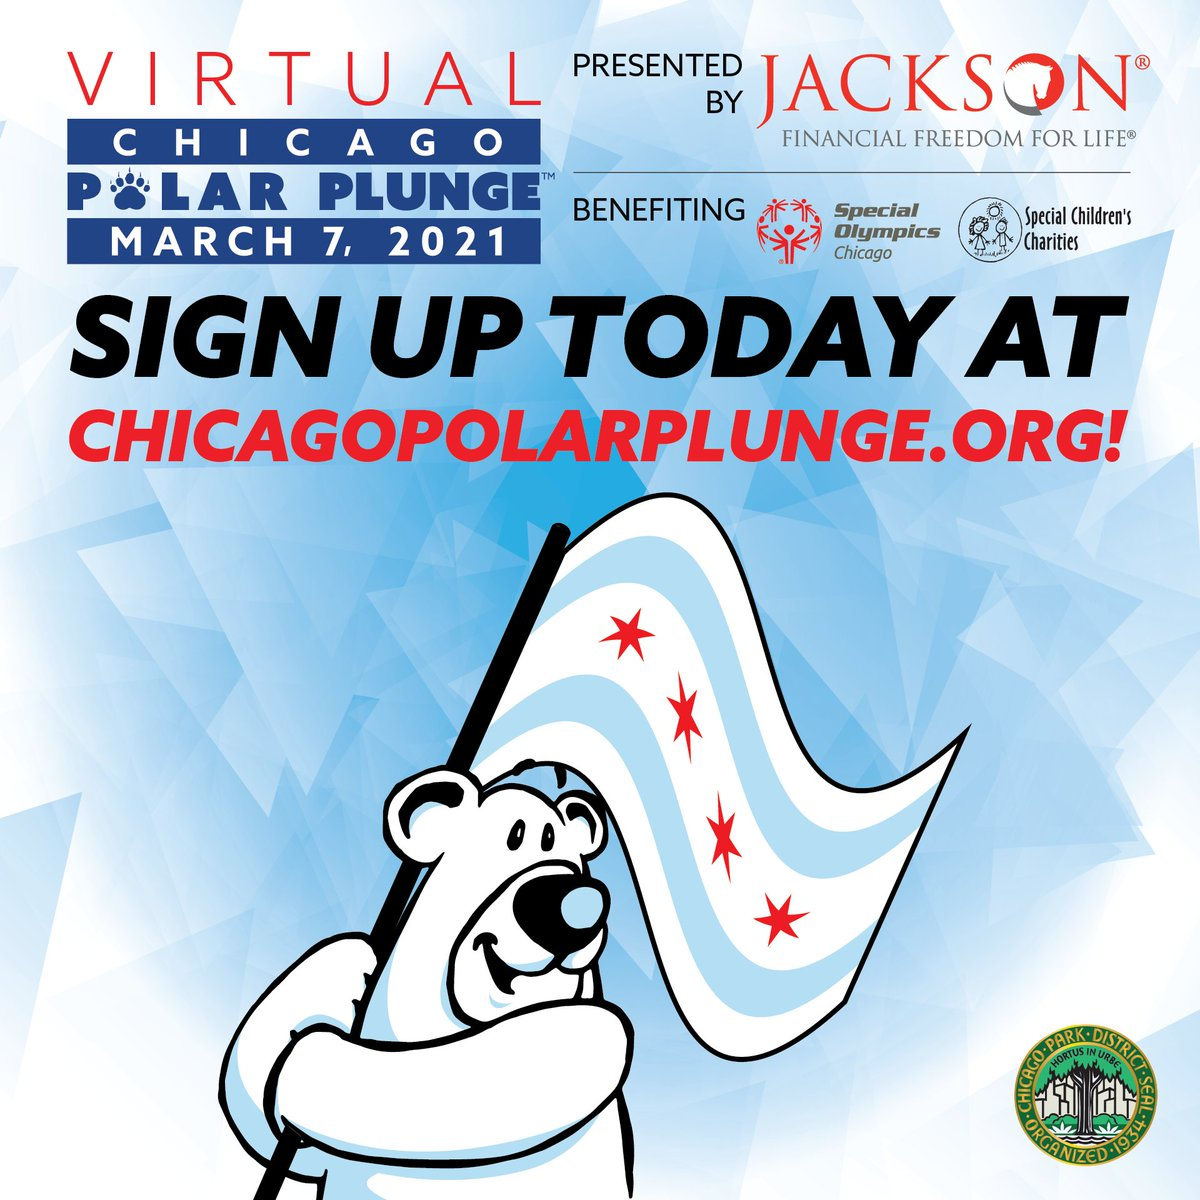 Are you looking for a great virtual team building exercise for your staff, club, or team? Sign up for the Virtual Chicago Polar Plunge presented by Jackson! It's a great challenge, a lot of fun, and help support 7,500 Special Olympics Chicago athletes! https://t.co/8nbSjau7zs https://t.co/4JZqX2uiYI